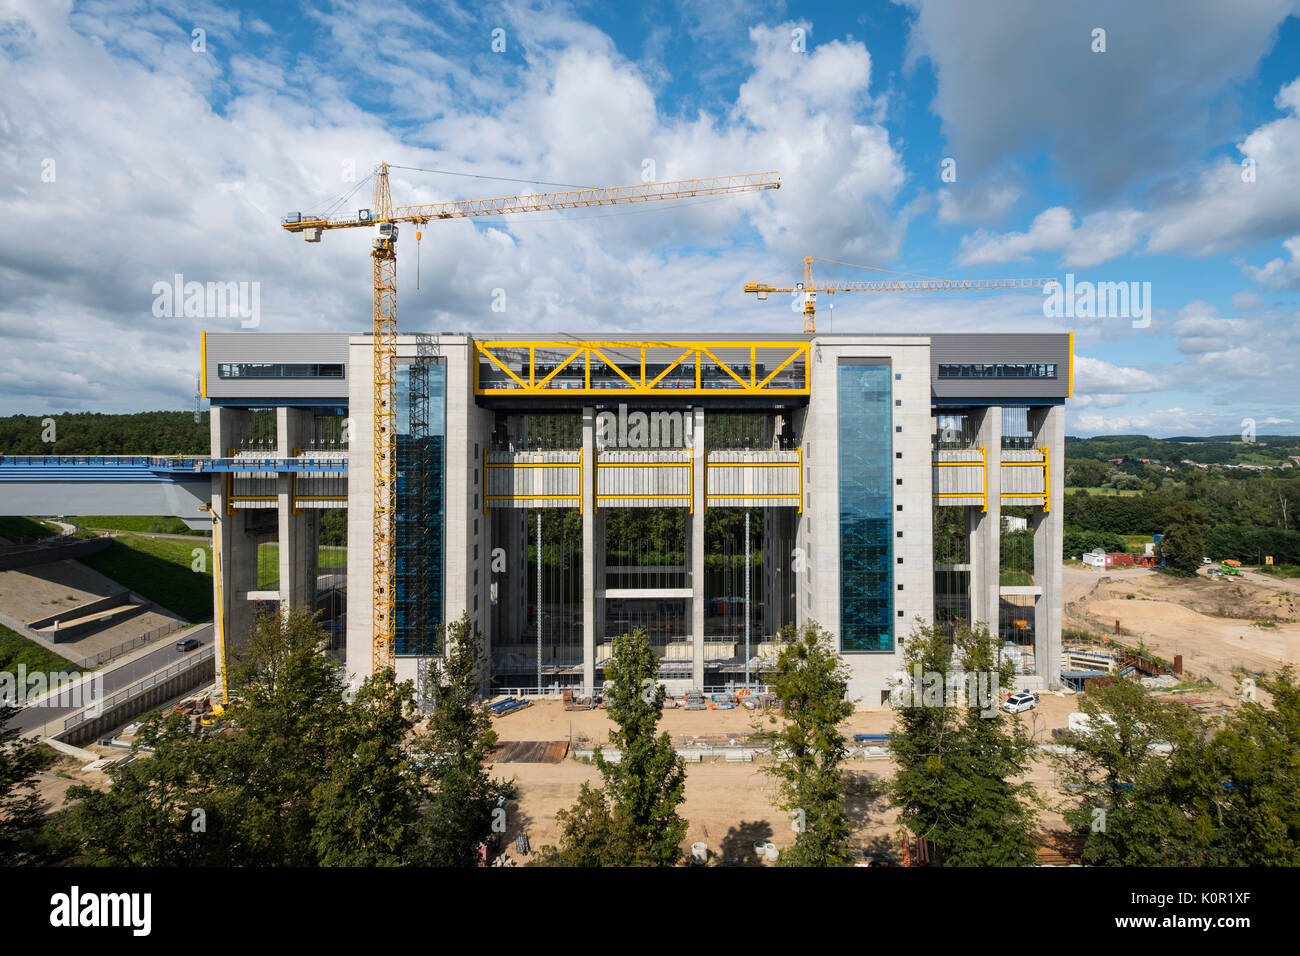 View of new ship lift under construction at Niederfinow in Brandenburg, Germany - Stock Image